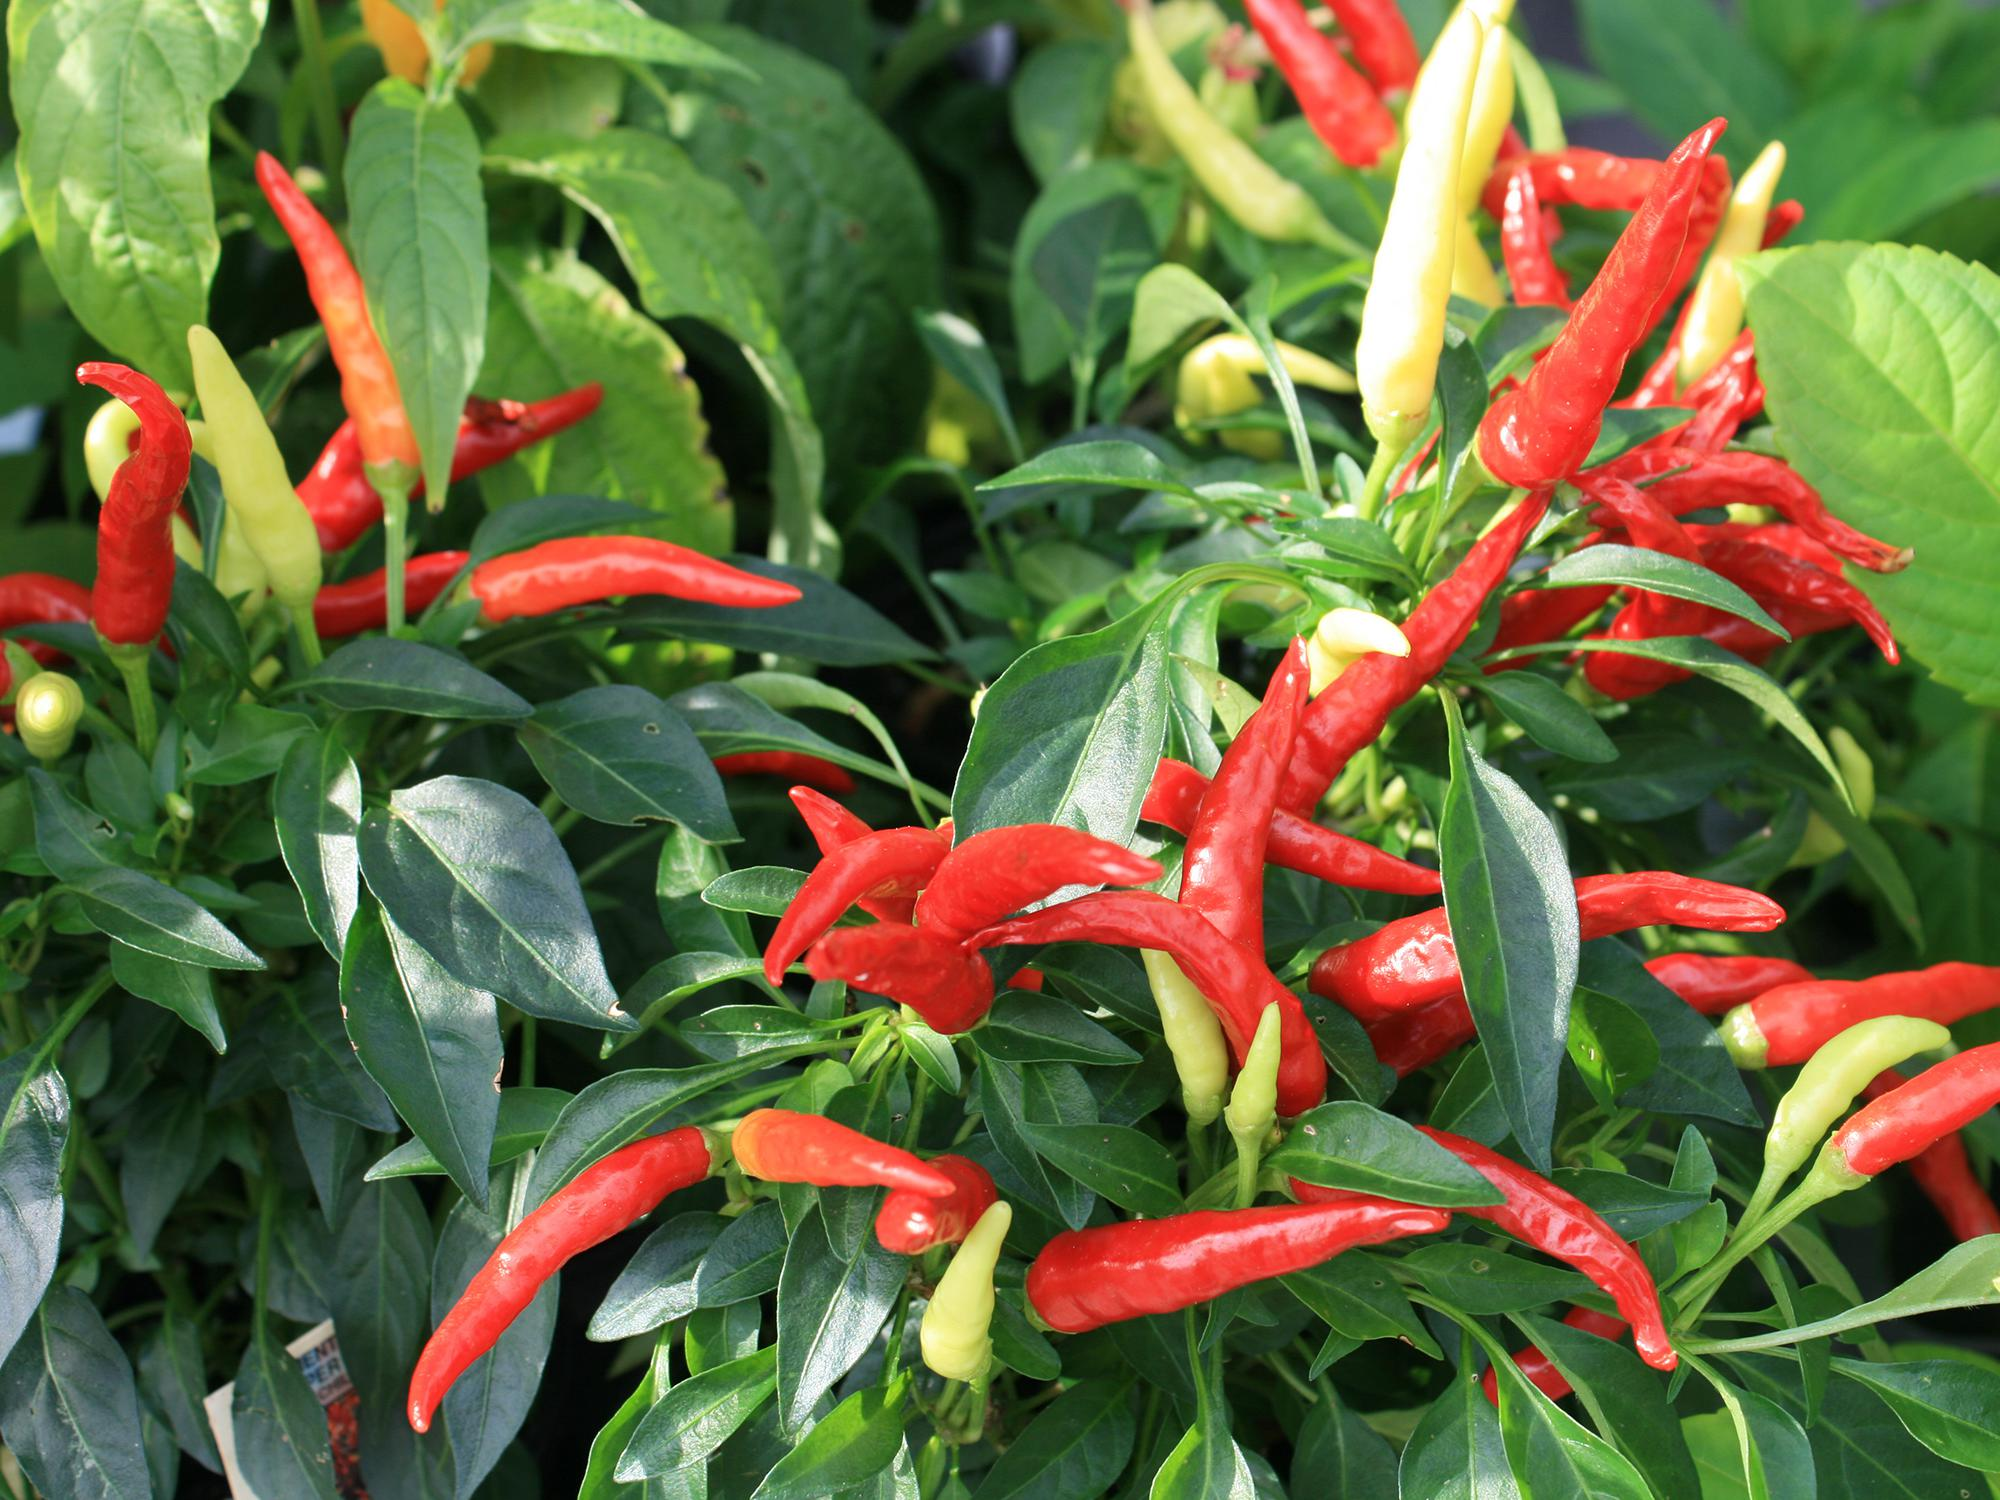 Several red pepper and a few yellow ones rise above green foliage.